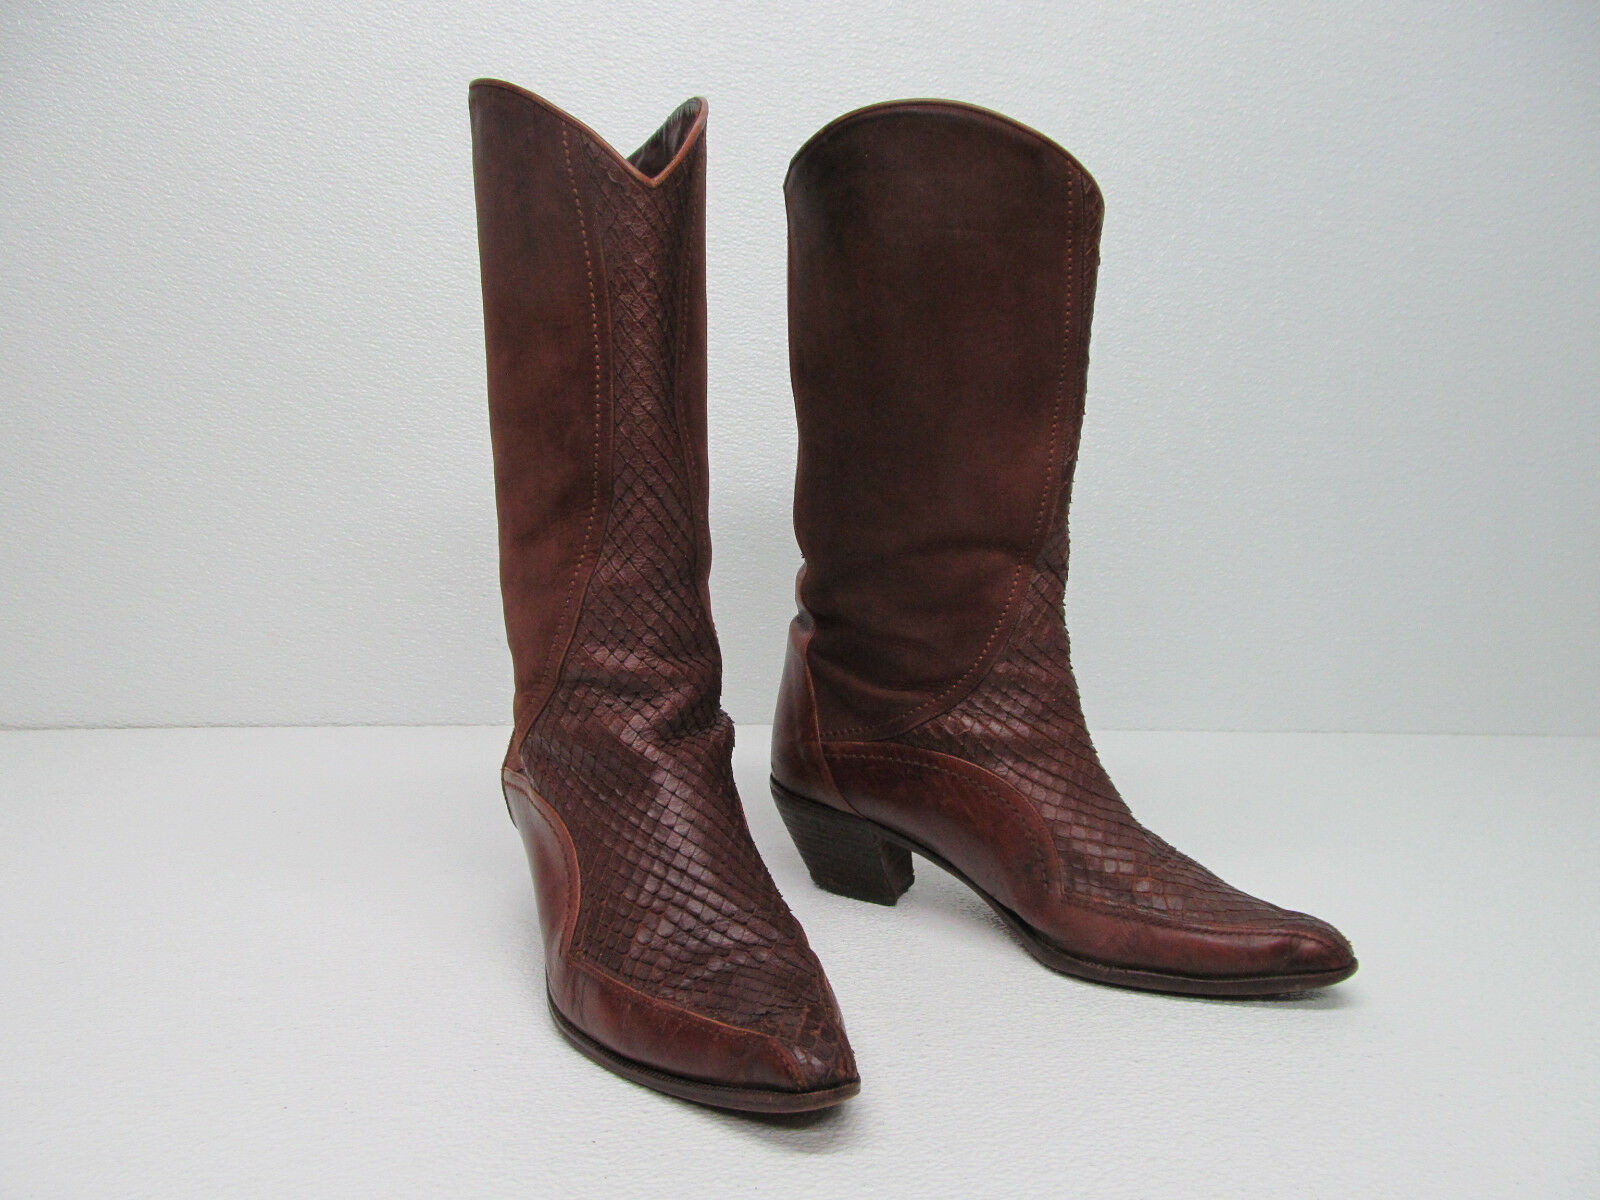 VIA SPIGA MADE IN ITALY BROWN LEATHER WESTERN Mid-Calf Boots Size WOMEN'S 7.5-8